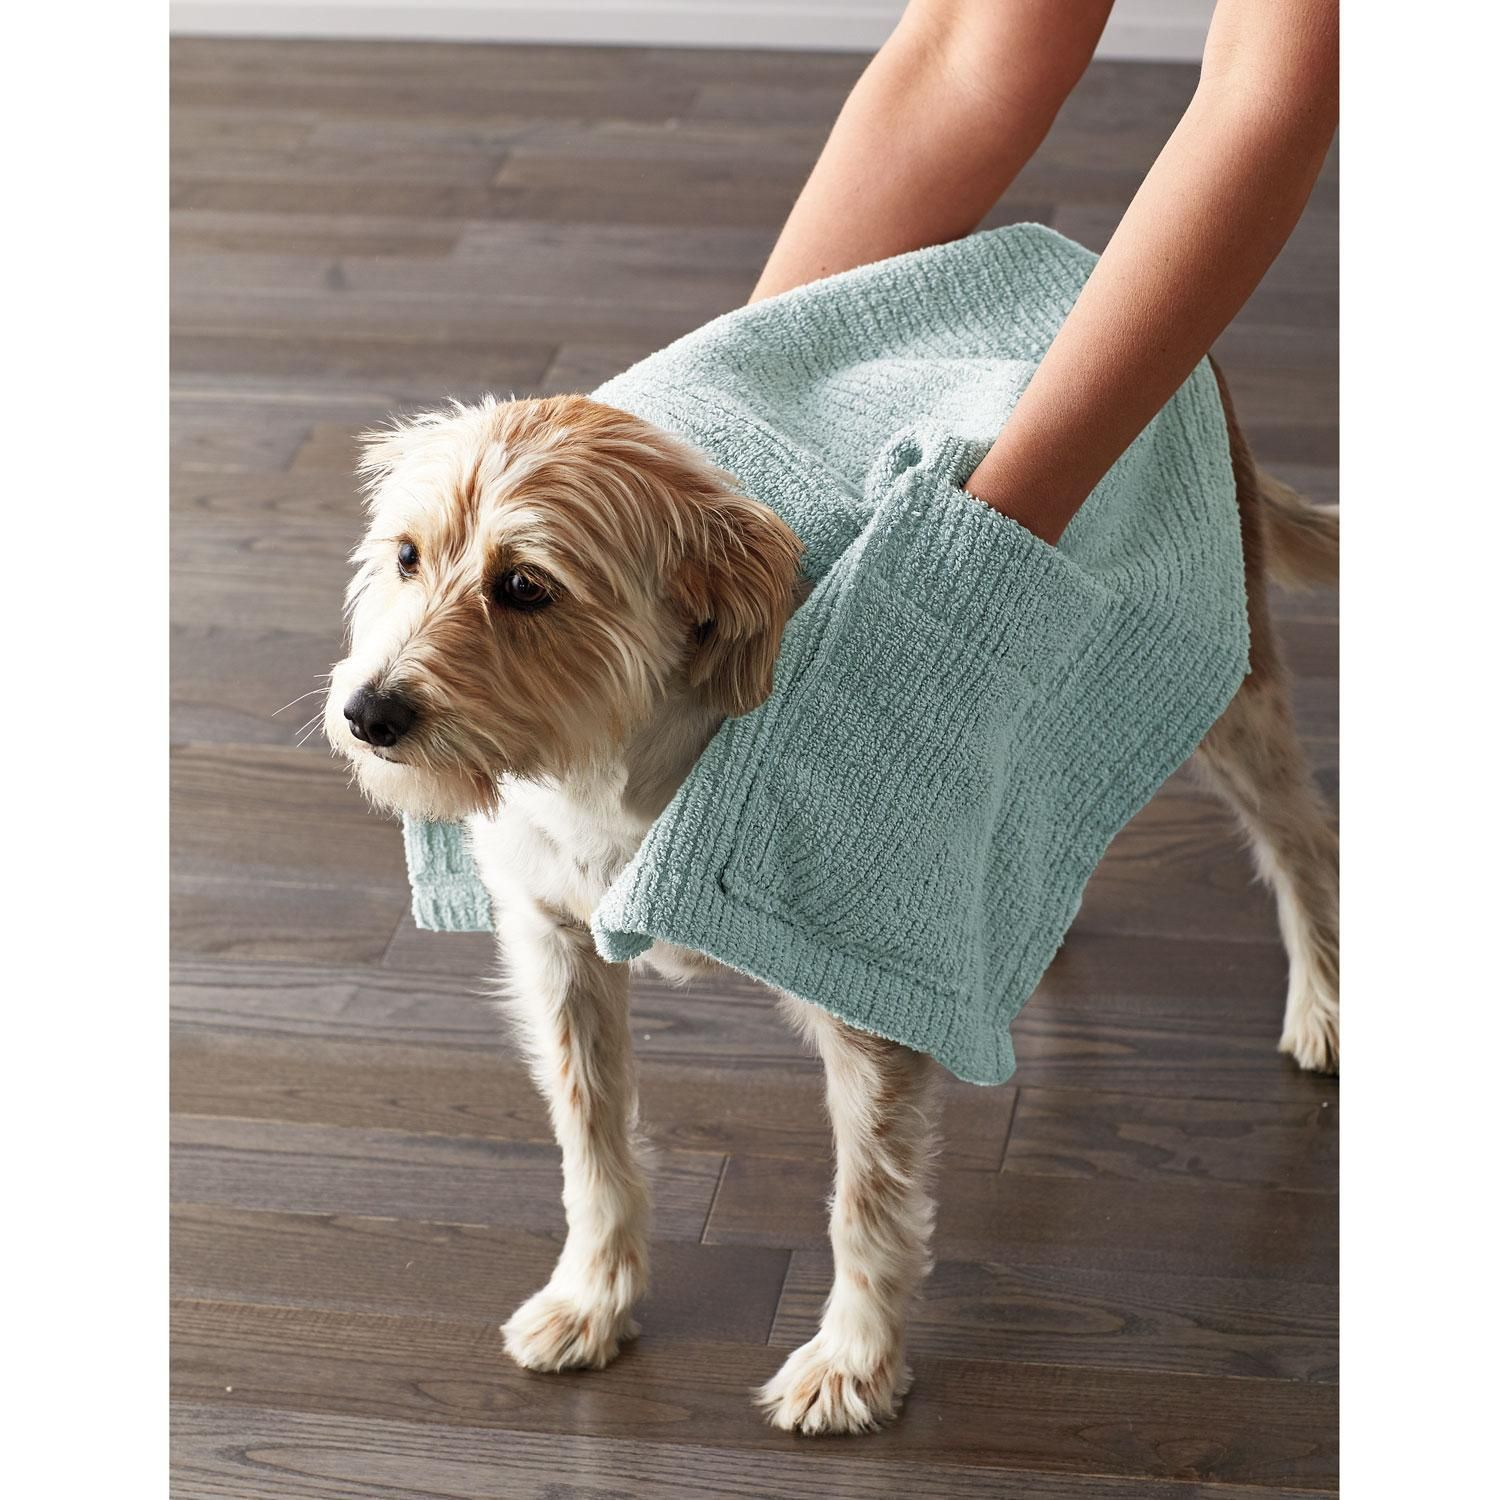 Green Earth Quick Dry Dog Towel In 2020 Earth Quick